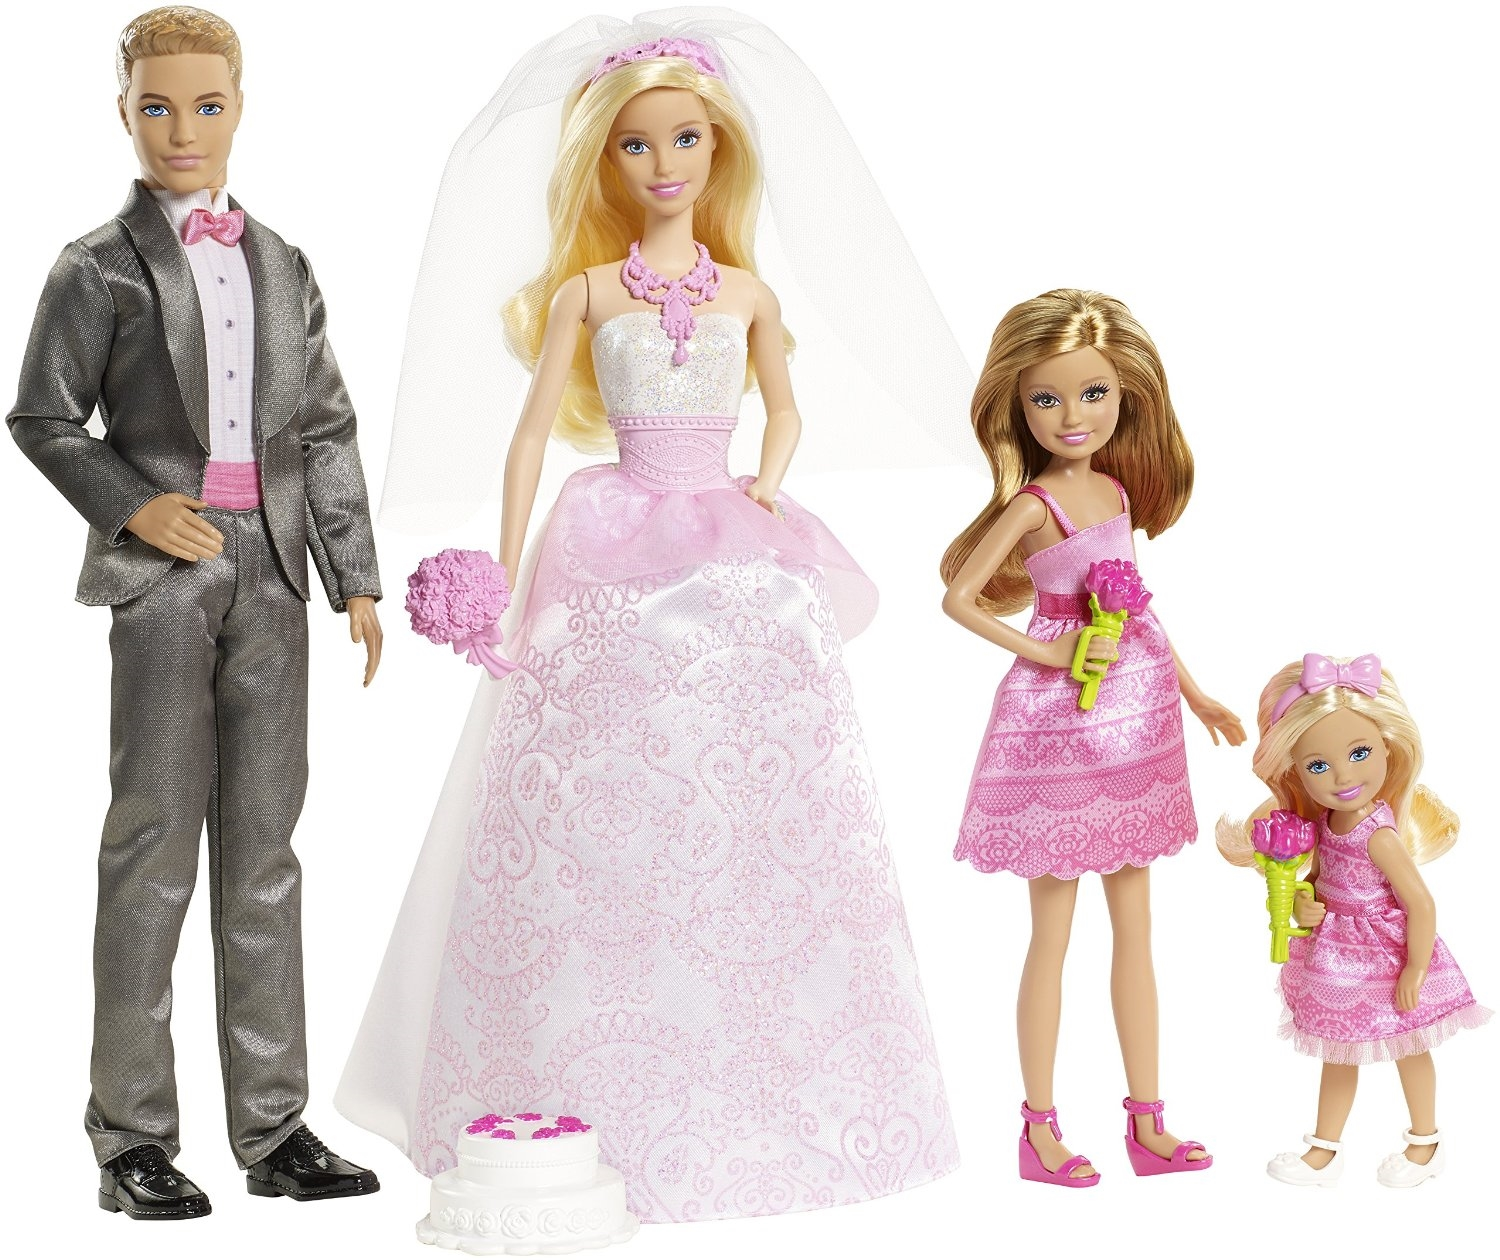 Ken Doll: Barbie in Rock'n Royals, Capa, Wedding & Brasil 2015